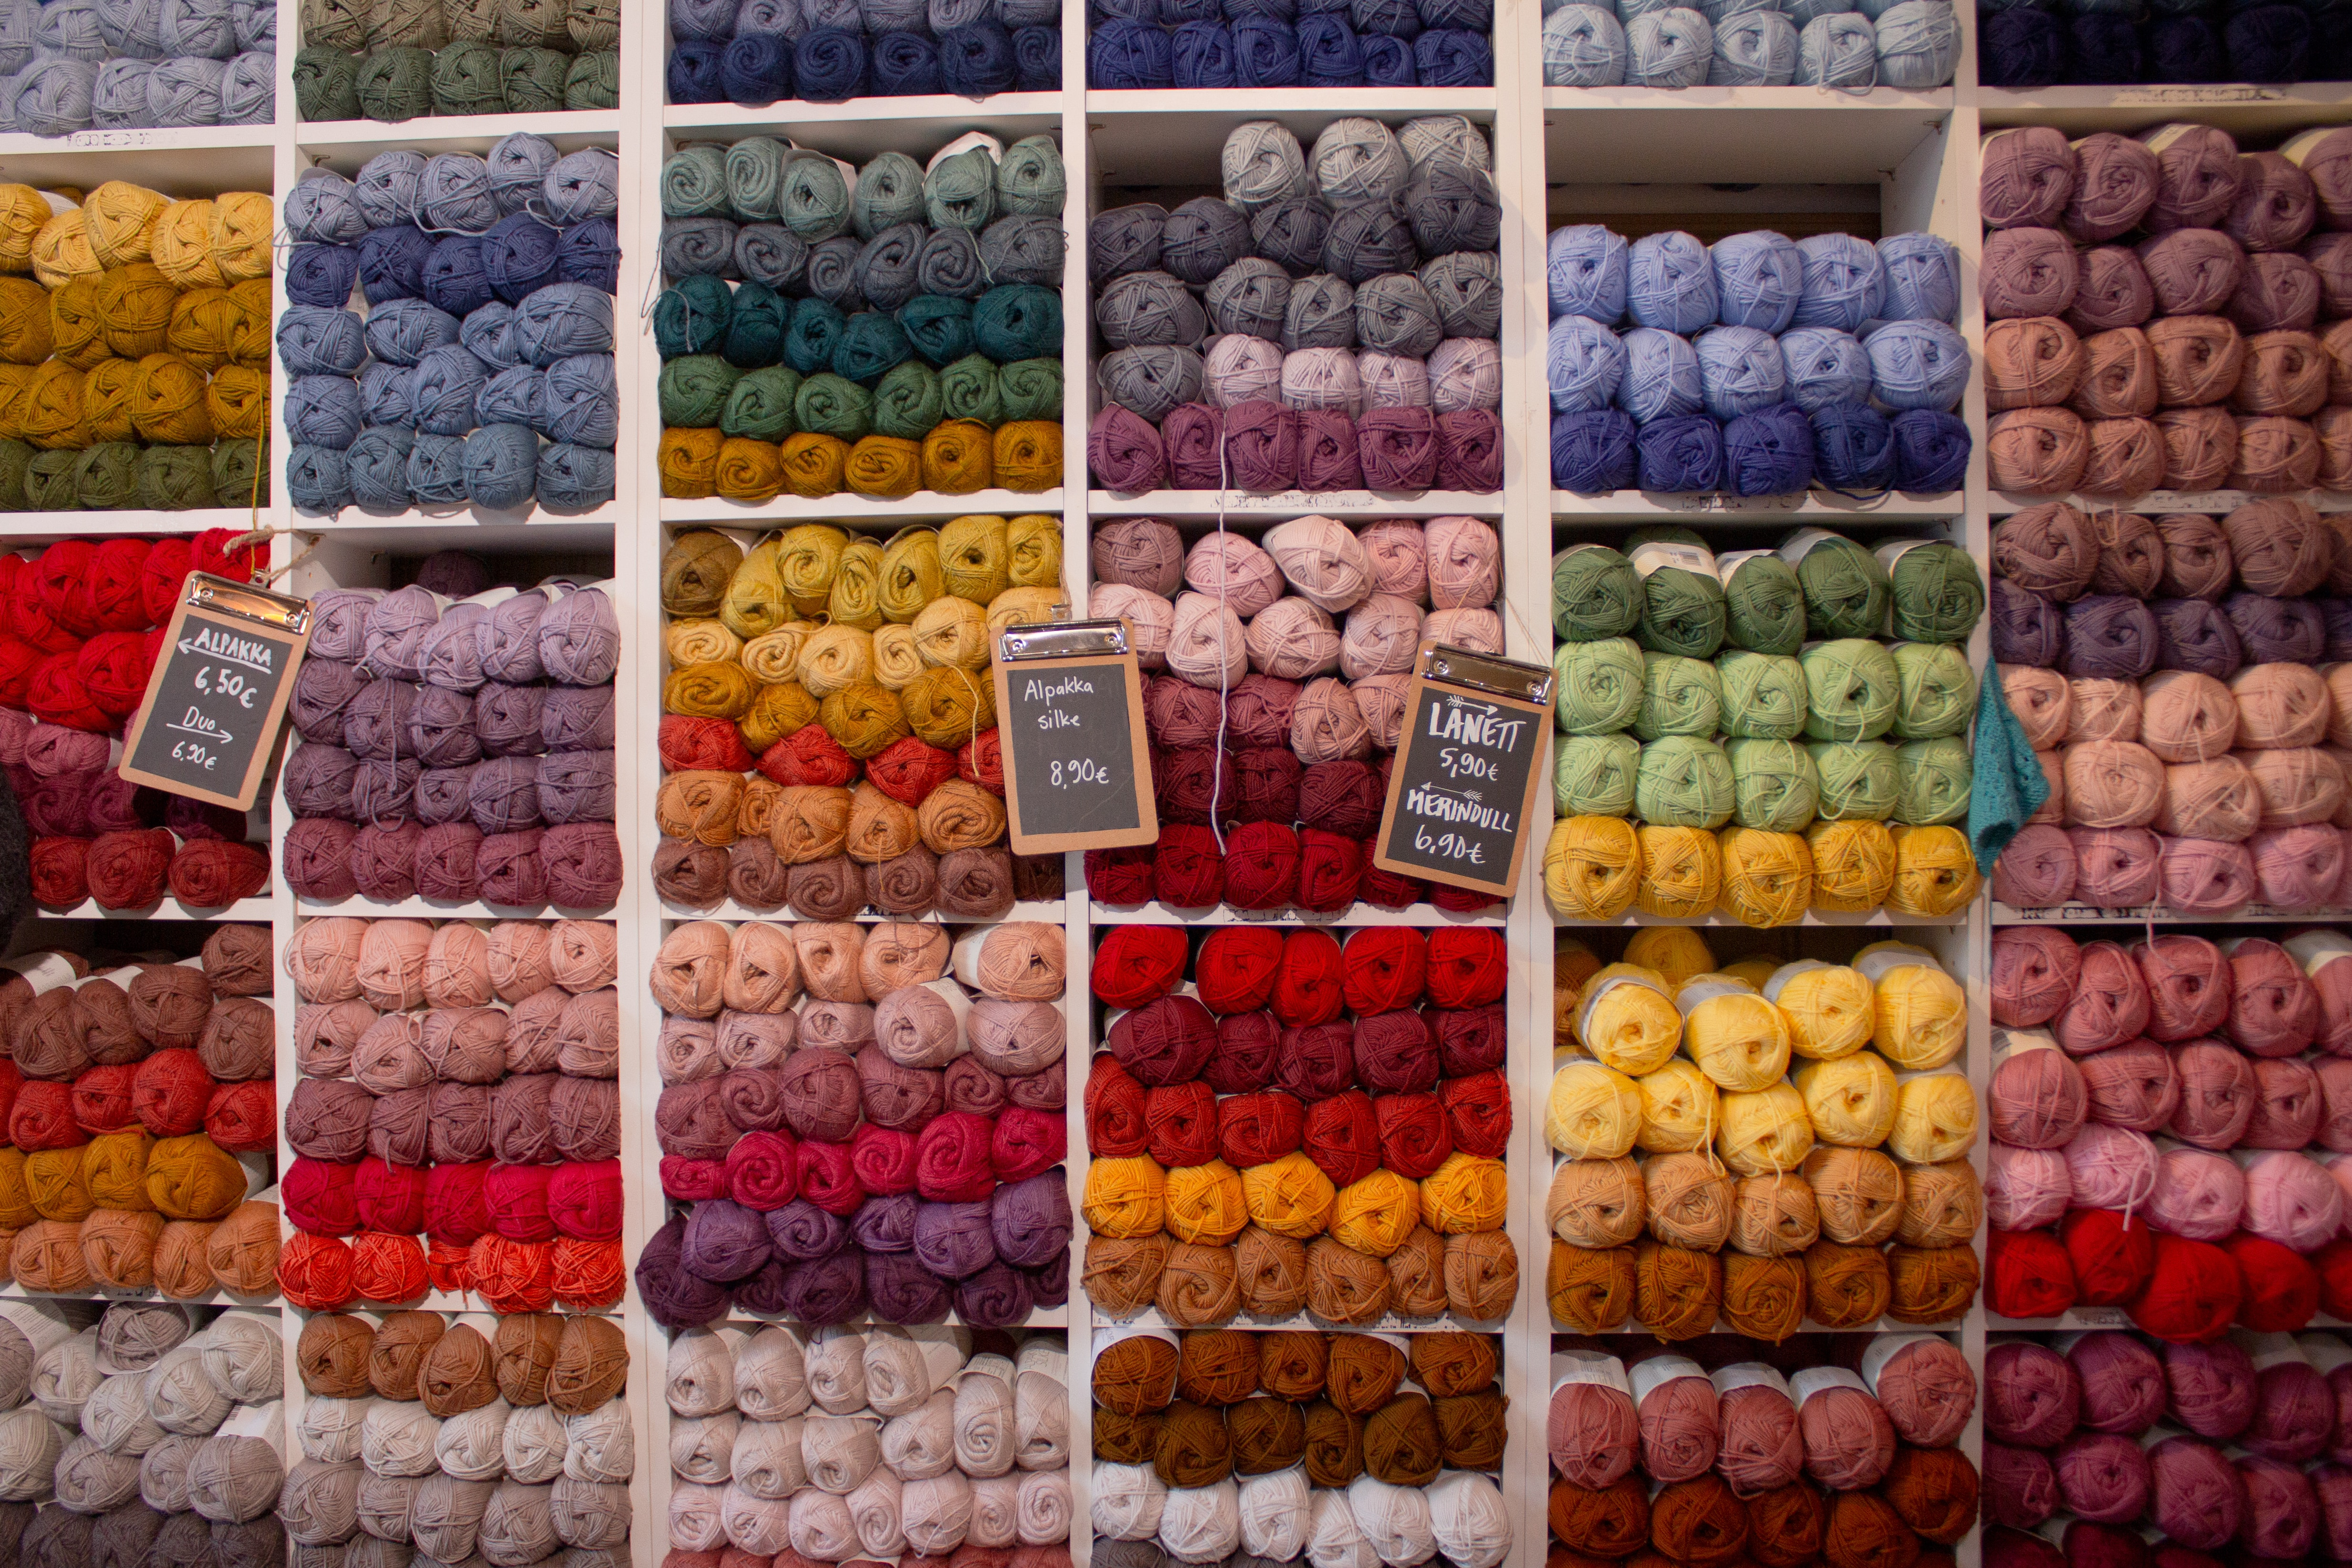 A wall of shelves stocked with yarn in a variety of colors.